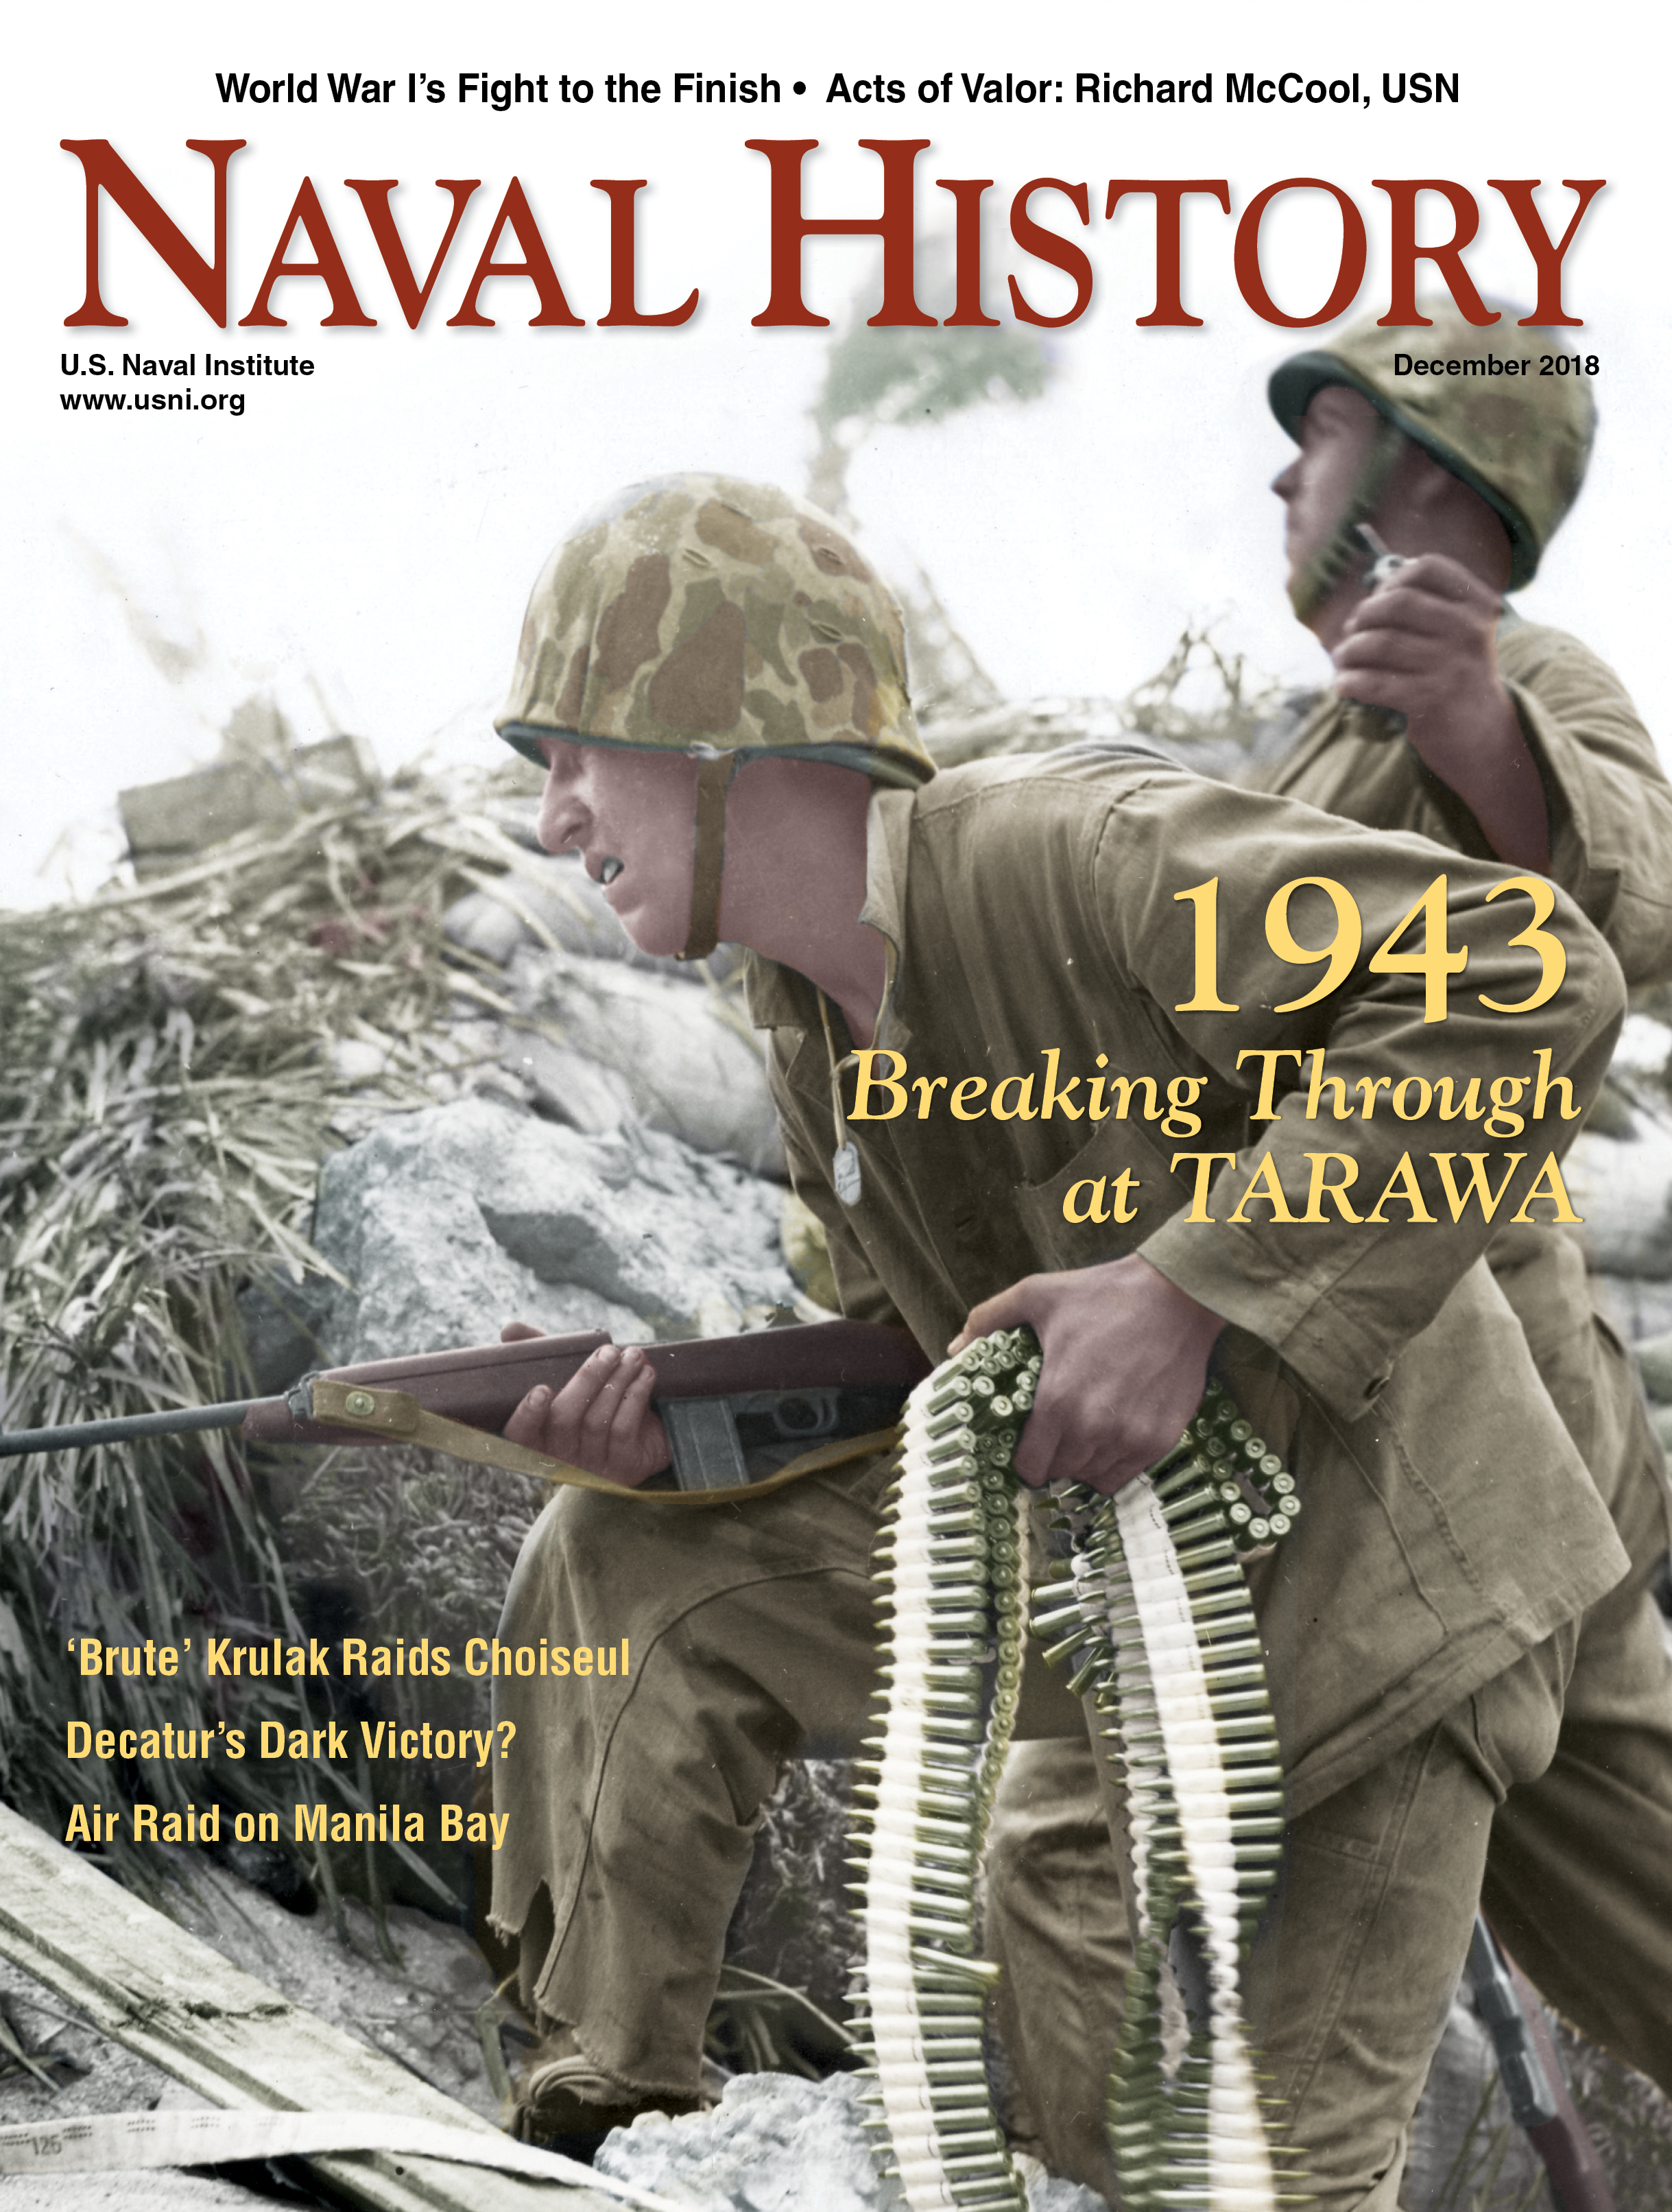 Naval History Magazine Cover, December 2018 Volume 32, Number 6